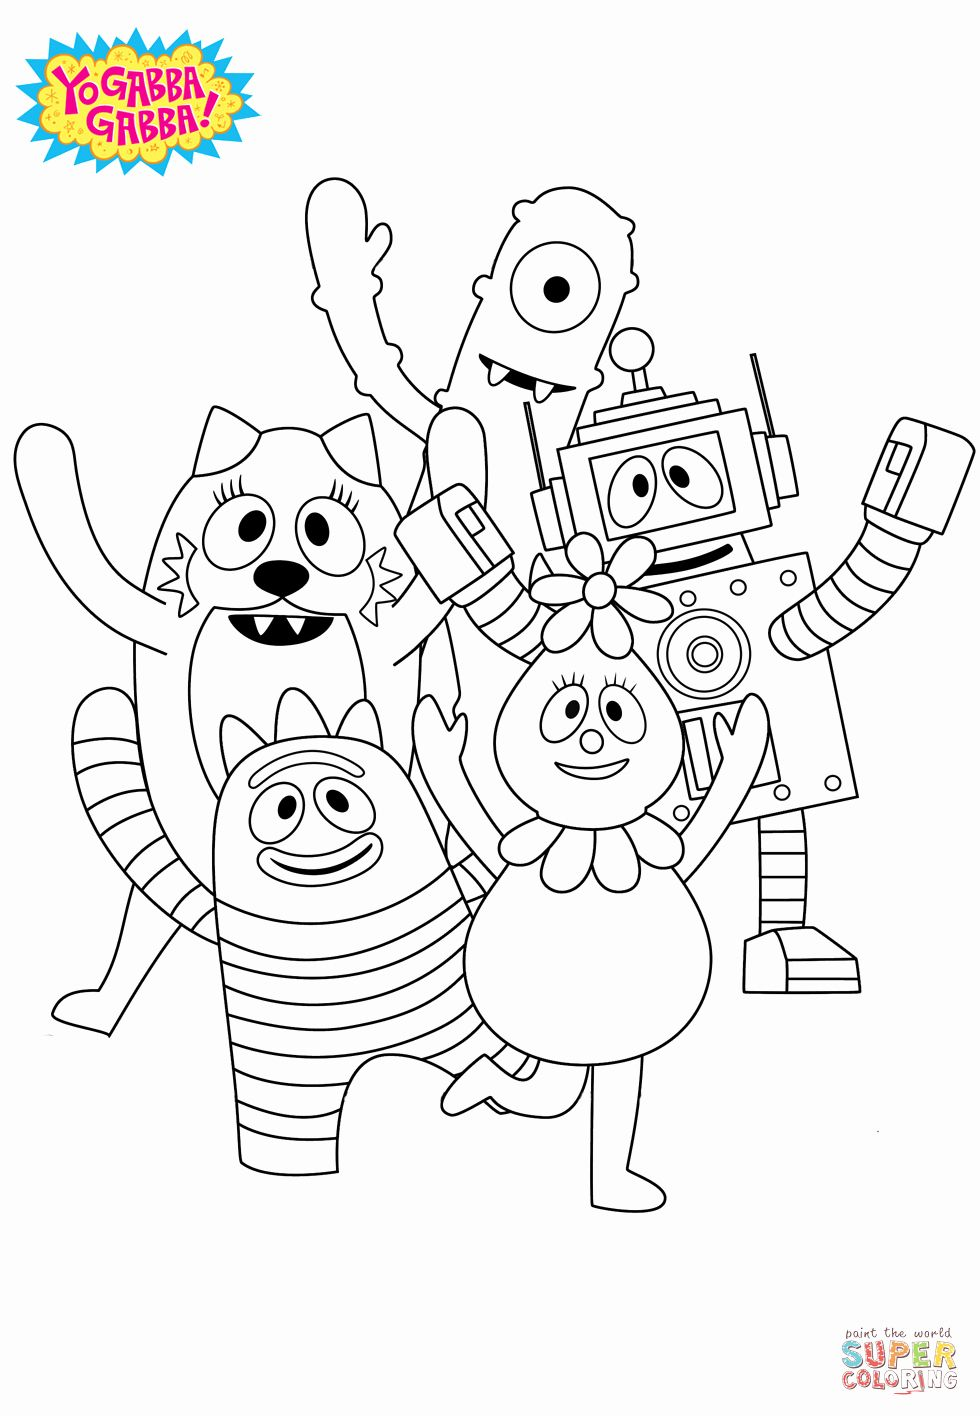 Yo Gabba Gabba Coloring Pages Elegant Yo Gabba Gabba Coloring Page Free Printable Coloring Pages Free Printable Coloring Coloring Pages